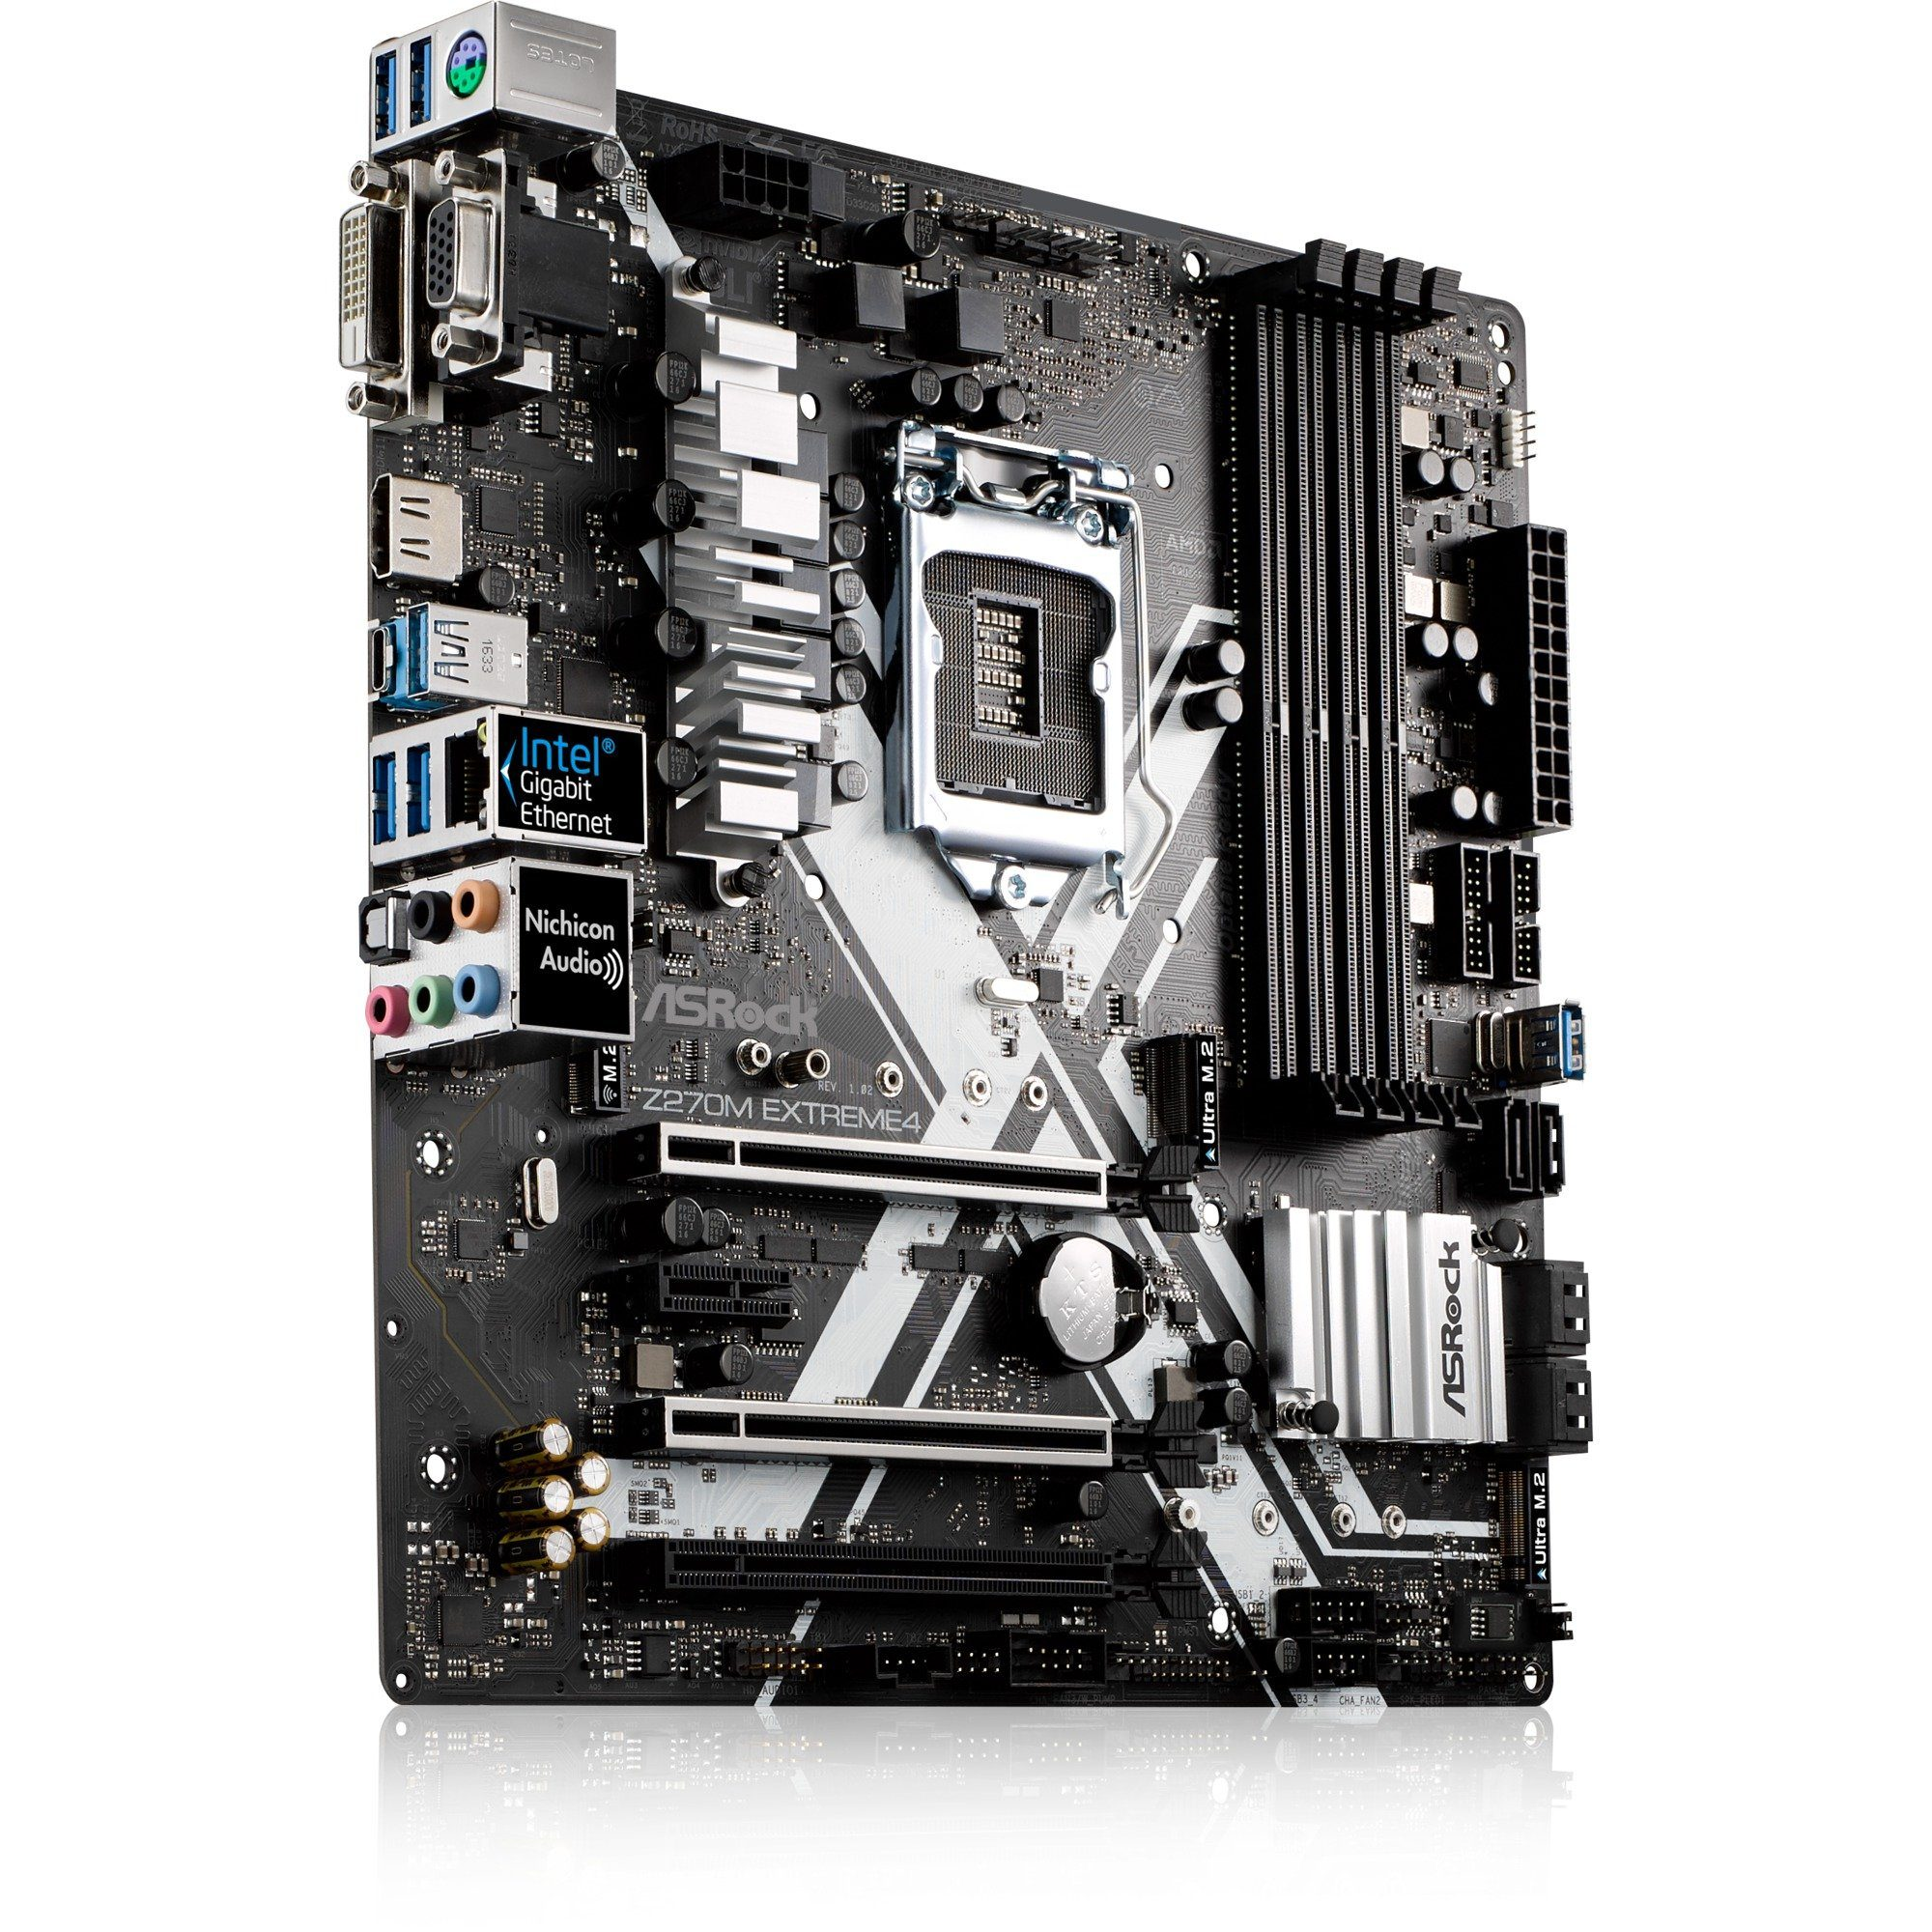 Asrock Mainboard »Z270M Extreme4«